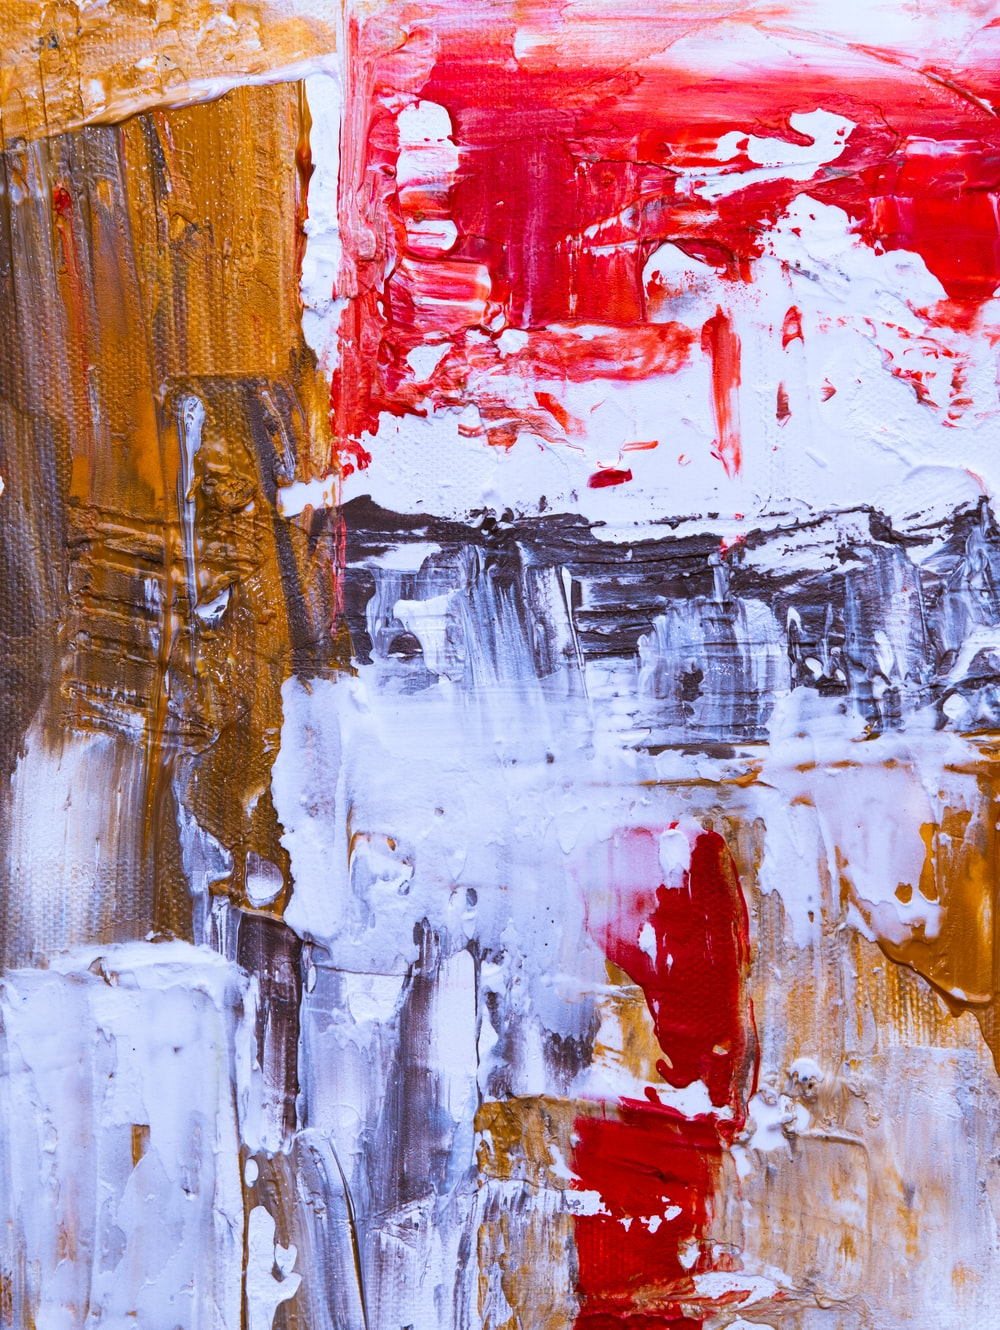 red, white, and brown abstract artwork